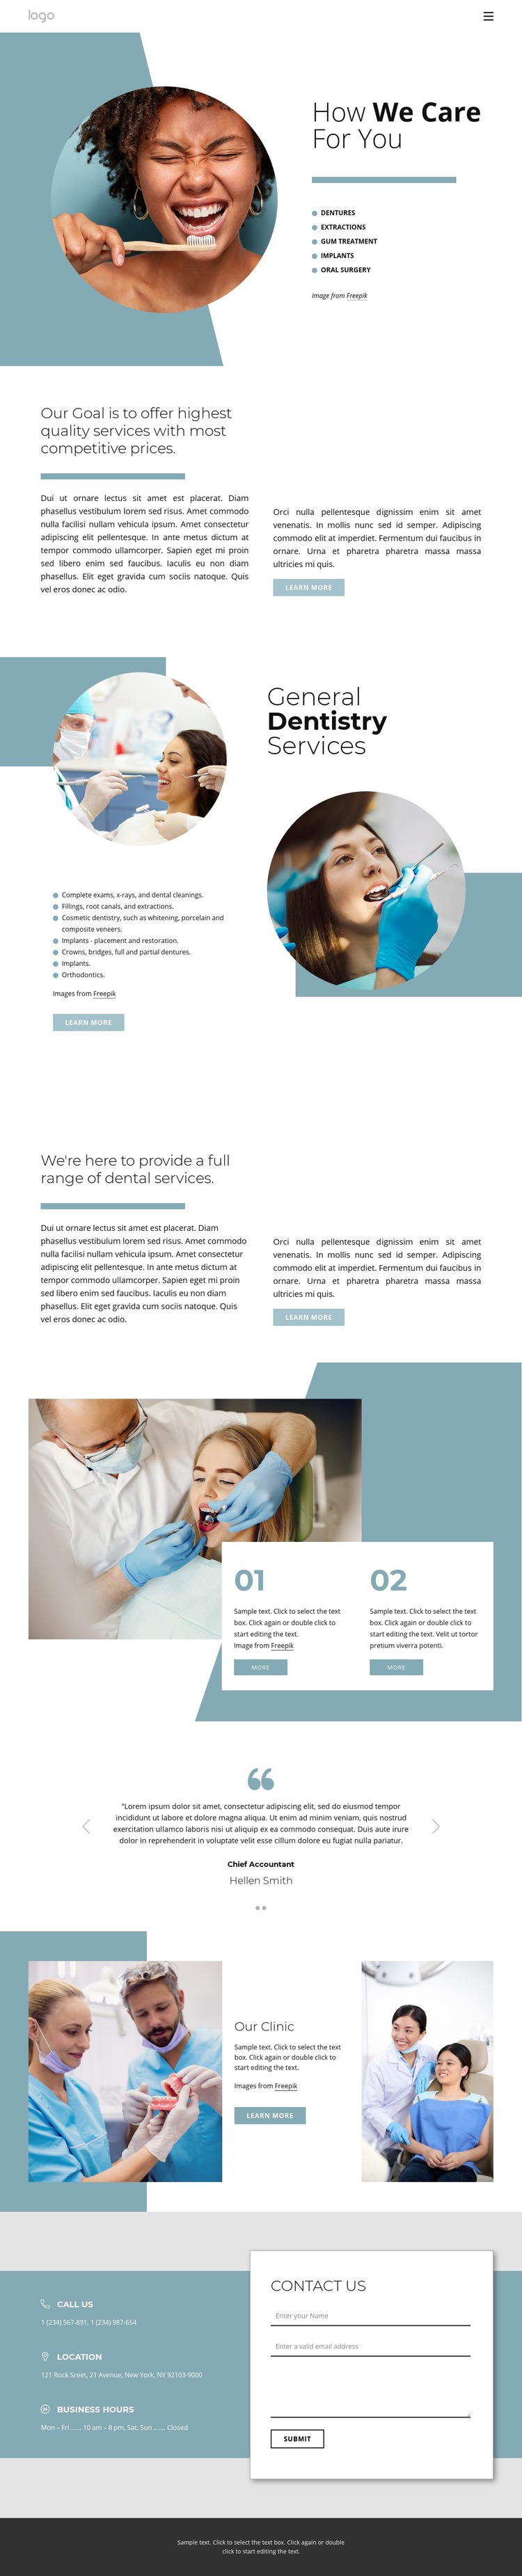 Hight quality dental services Web Page Design